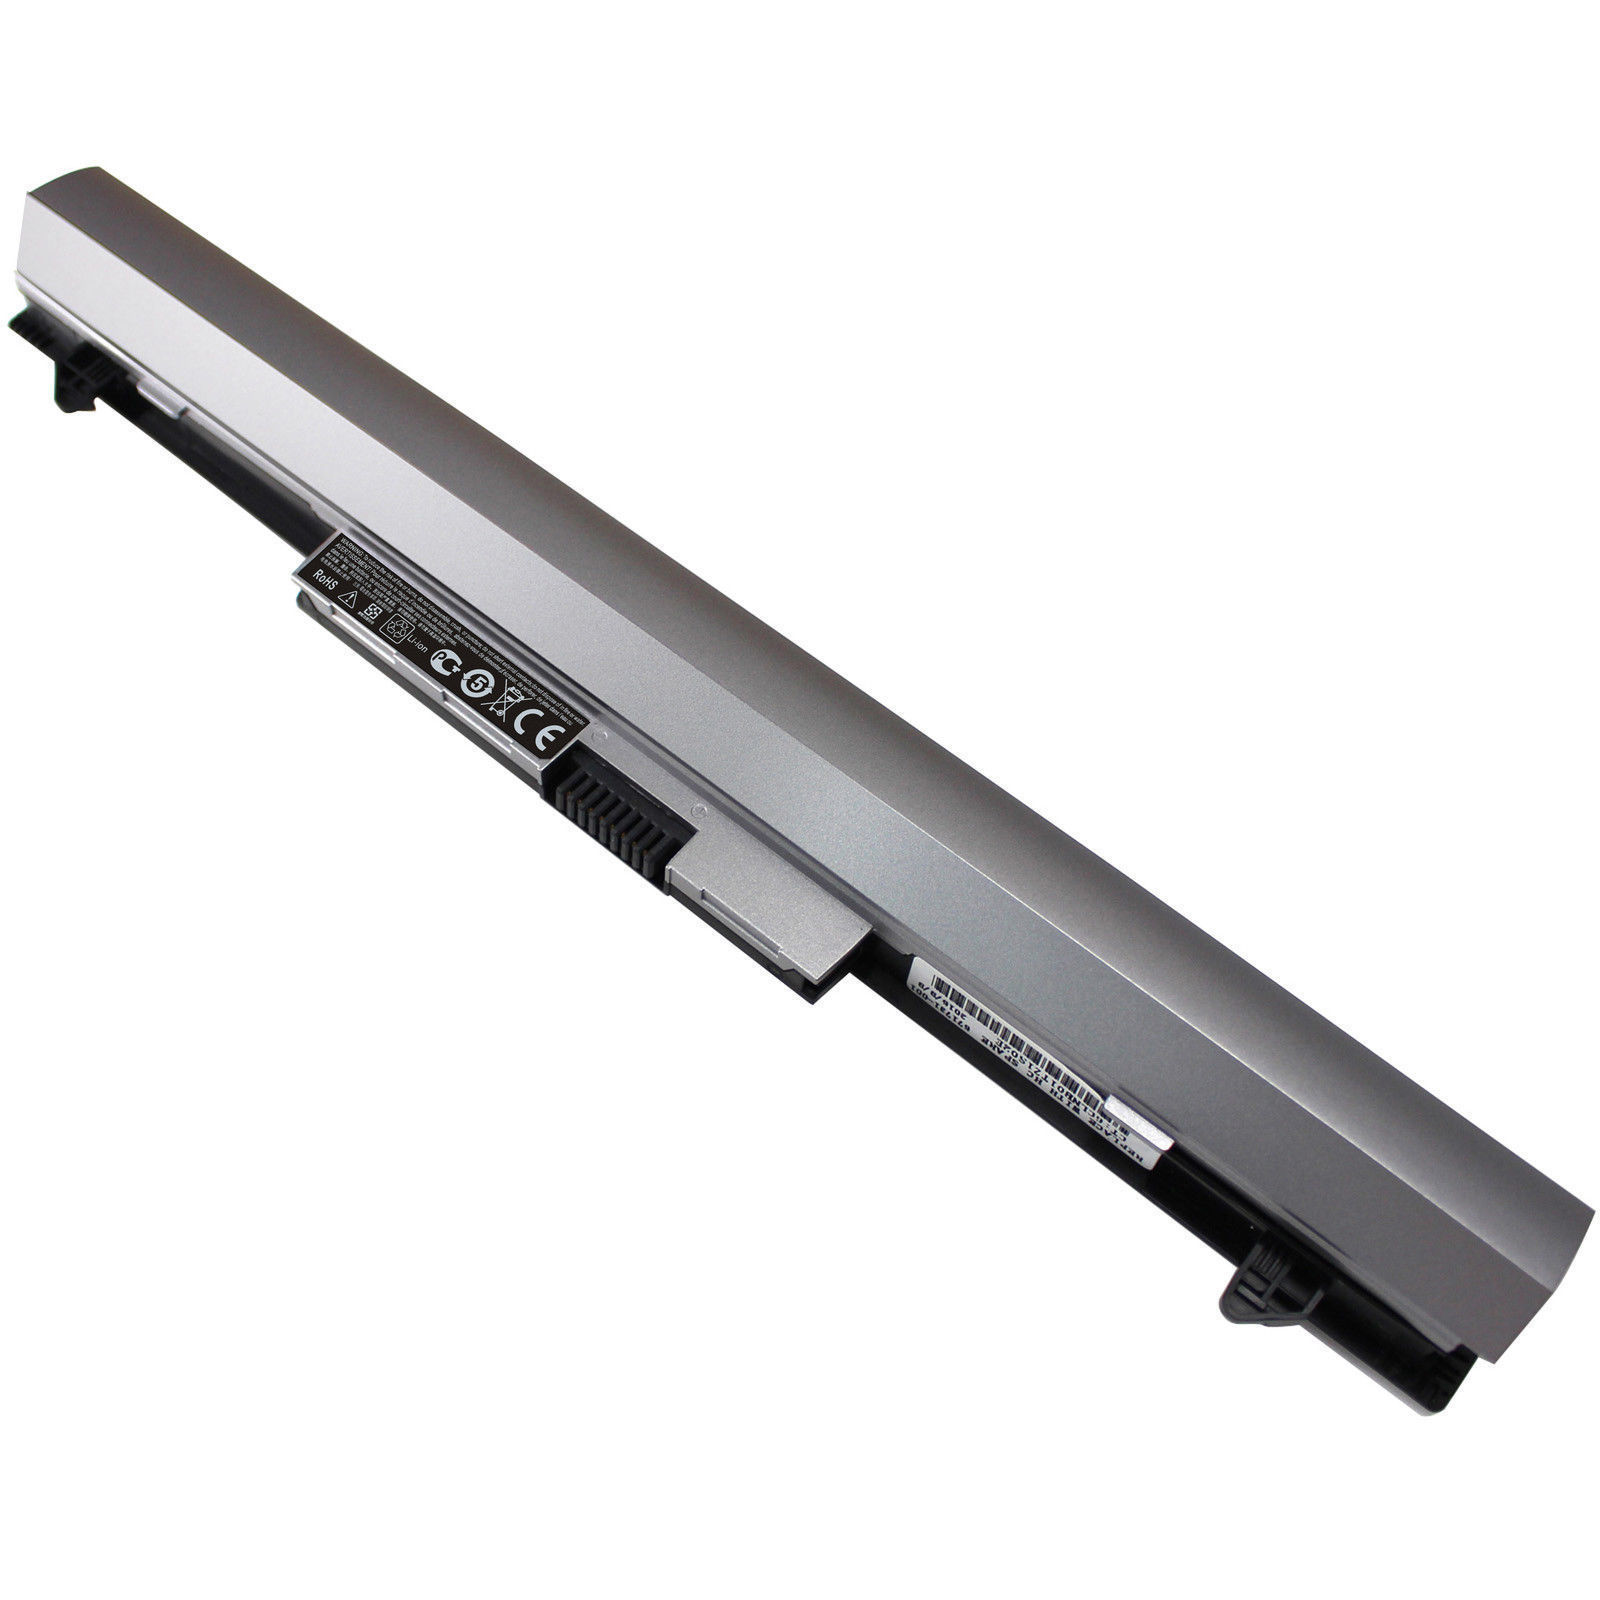 Primary image for HP ProBook 430 G3 T6P99ES Battery 805291-001 805292-001 811347-001 RO06055XL-CL